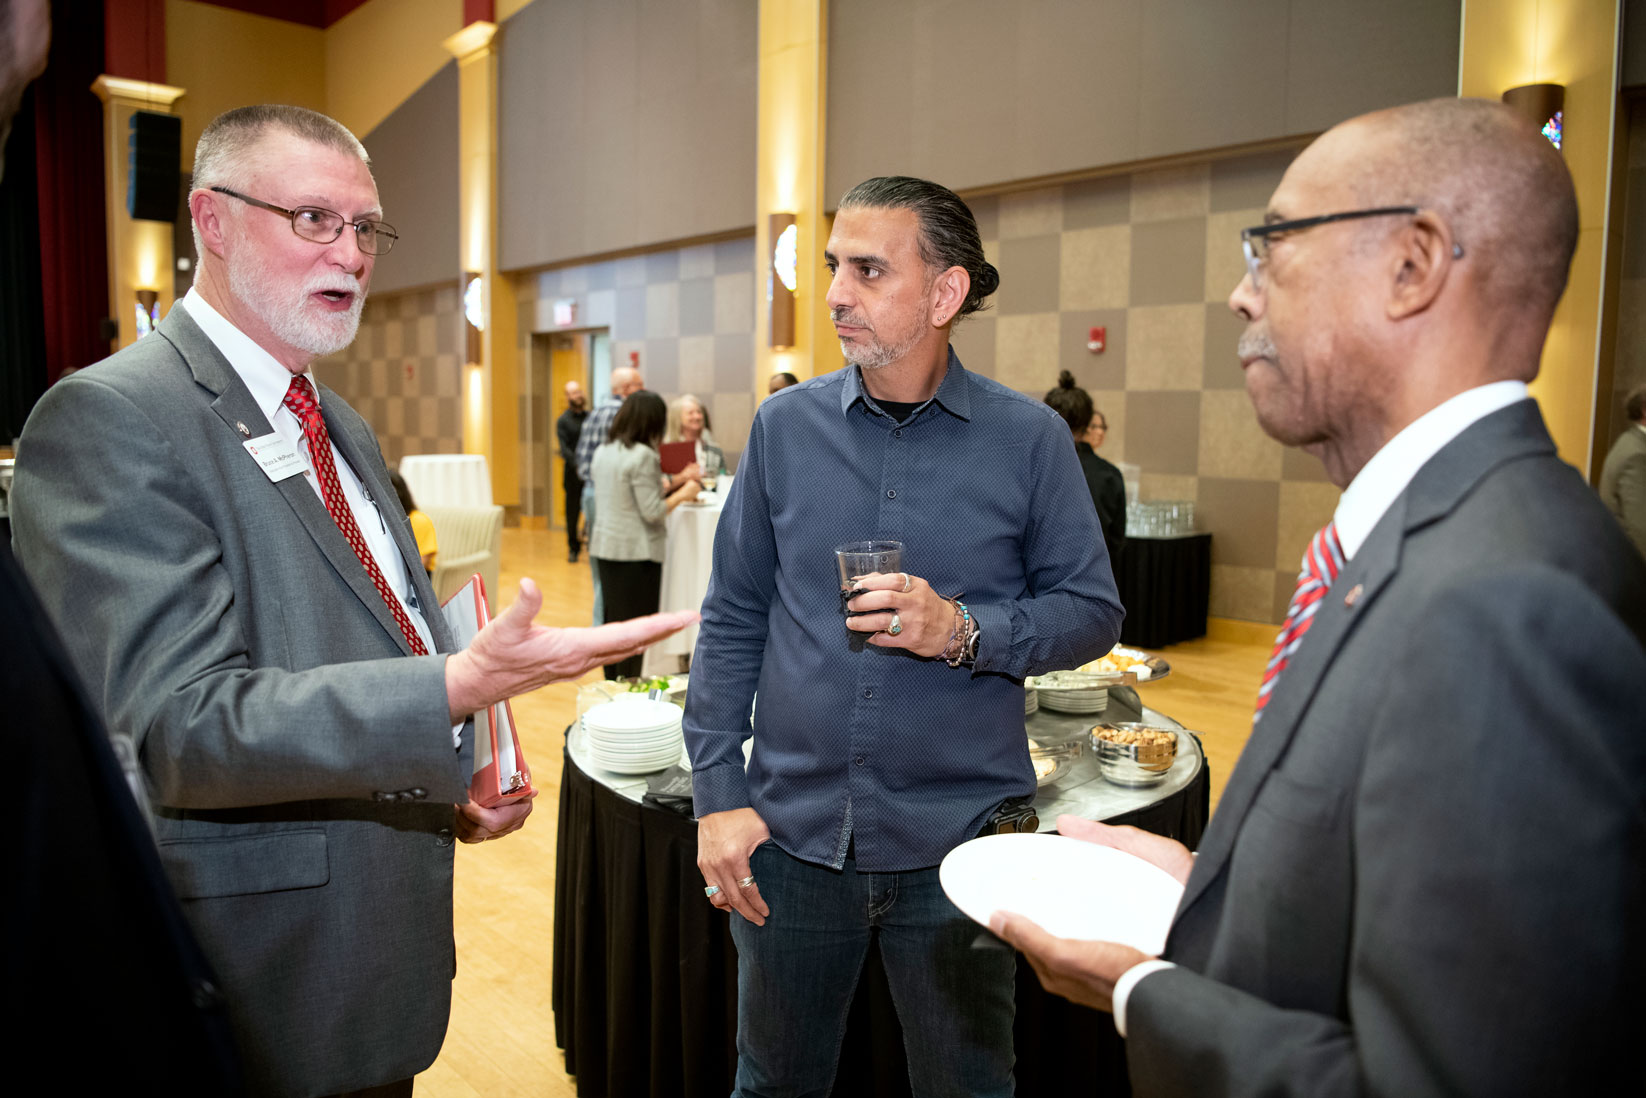 Speaker Jamie Casap, President Drake and Bruce A. McPheron, Executive Vice President & Provost, discuss learning at the Think Beyond summit